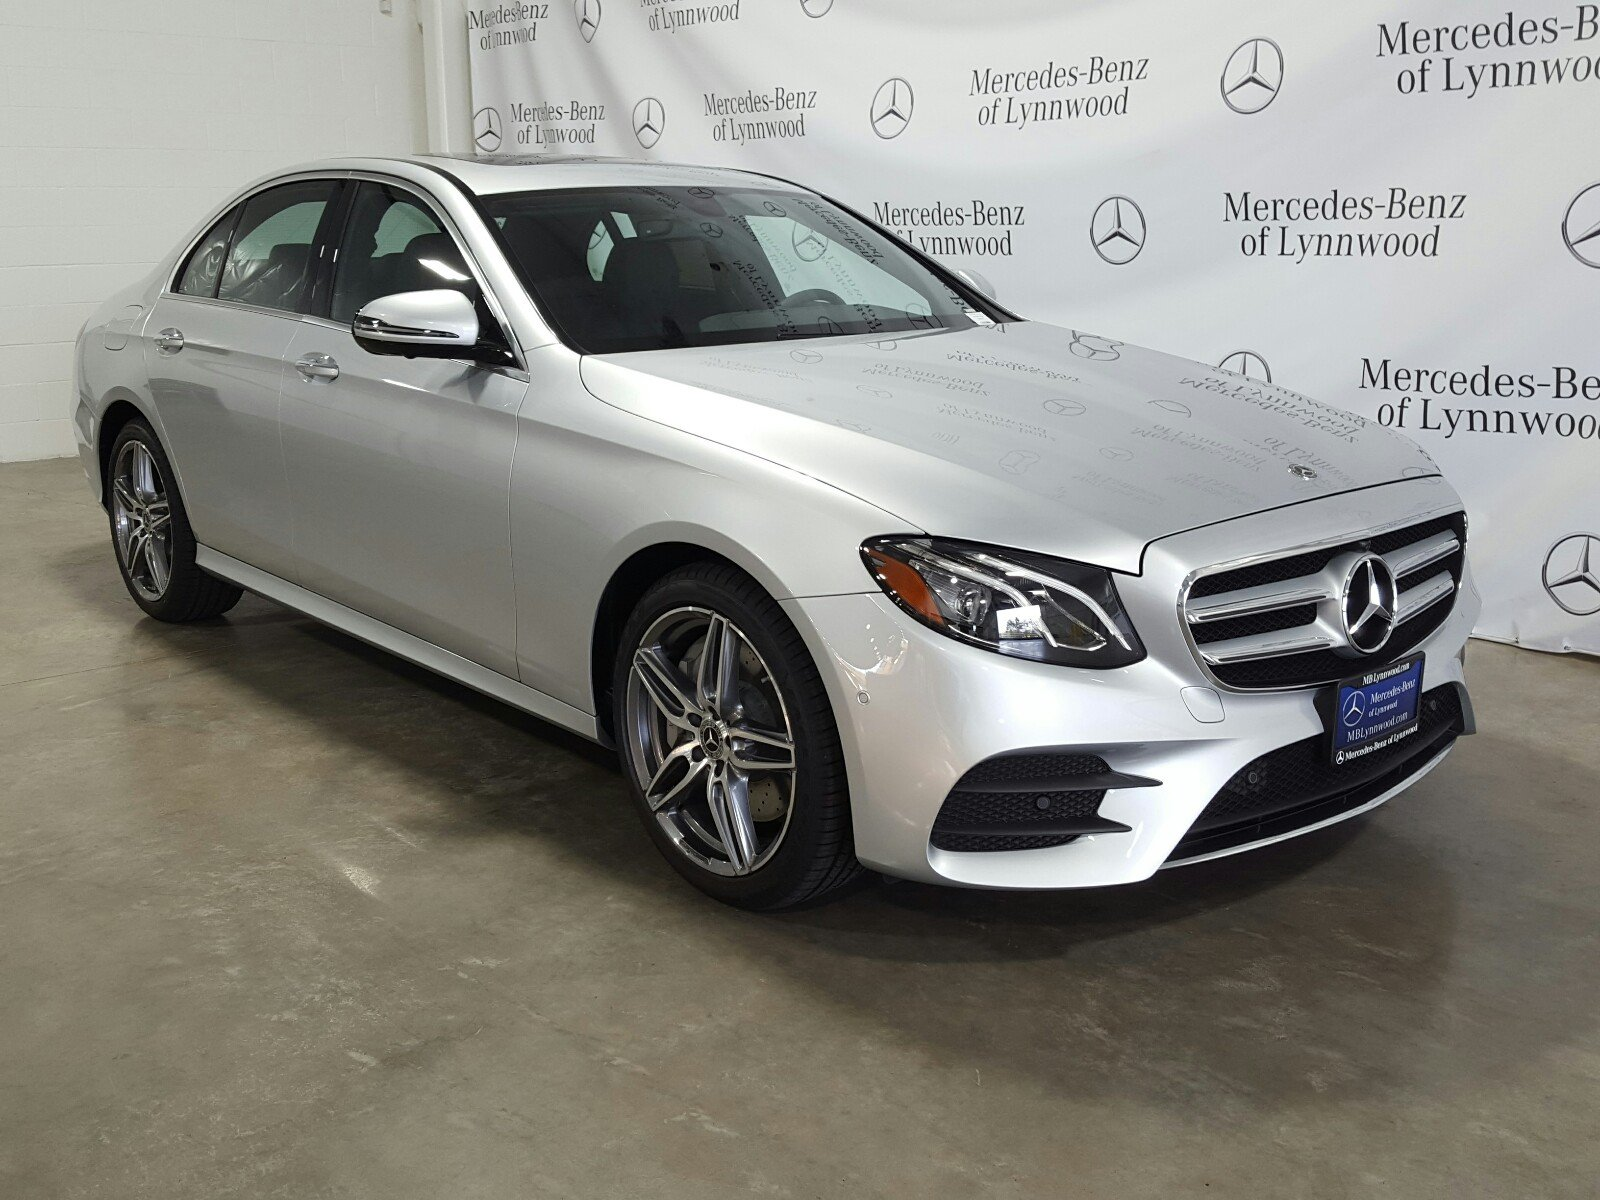 New 2019 Mercedes Benz E Class E 300 4MATIC SEDAN in Lynnwood